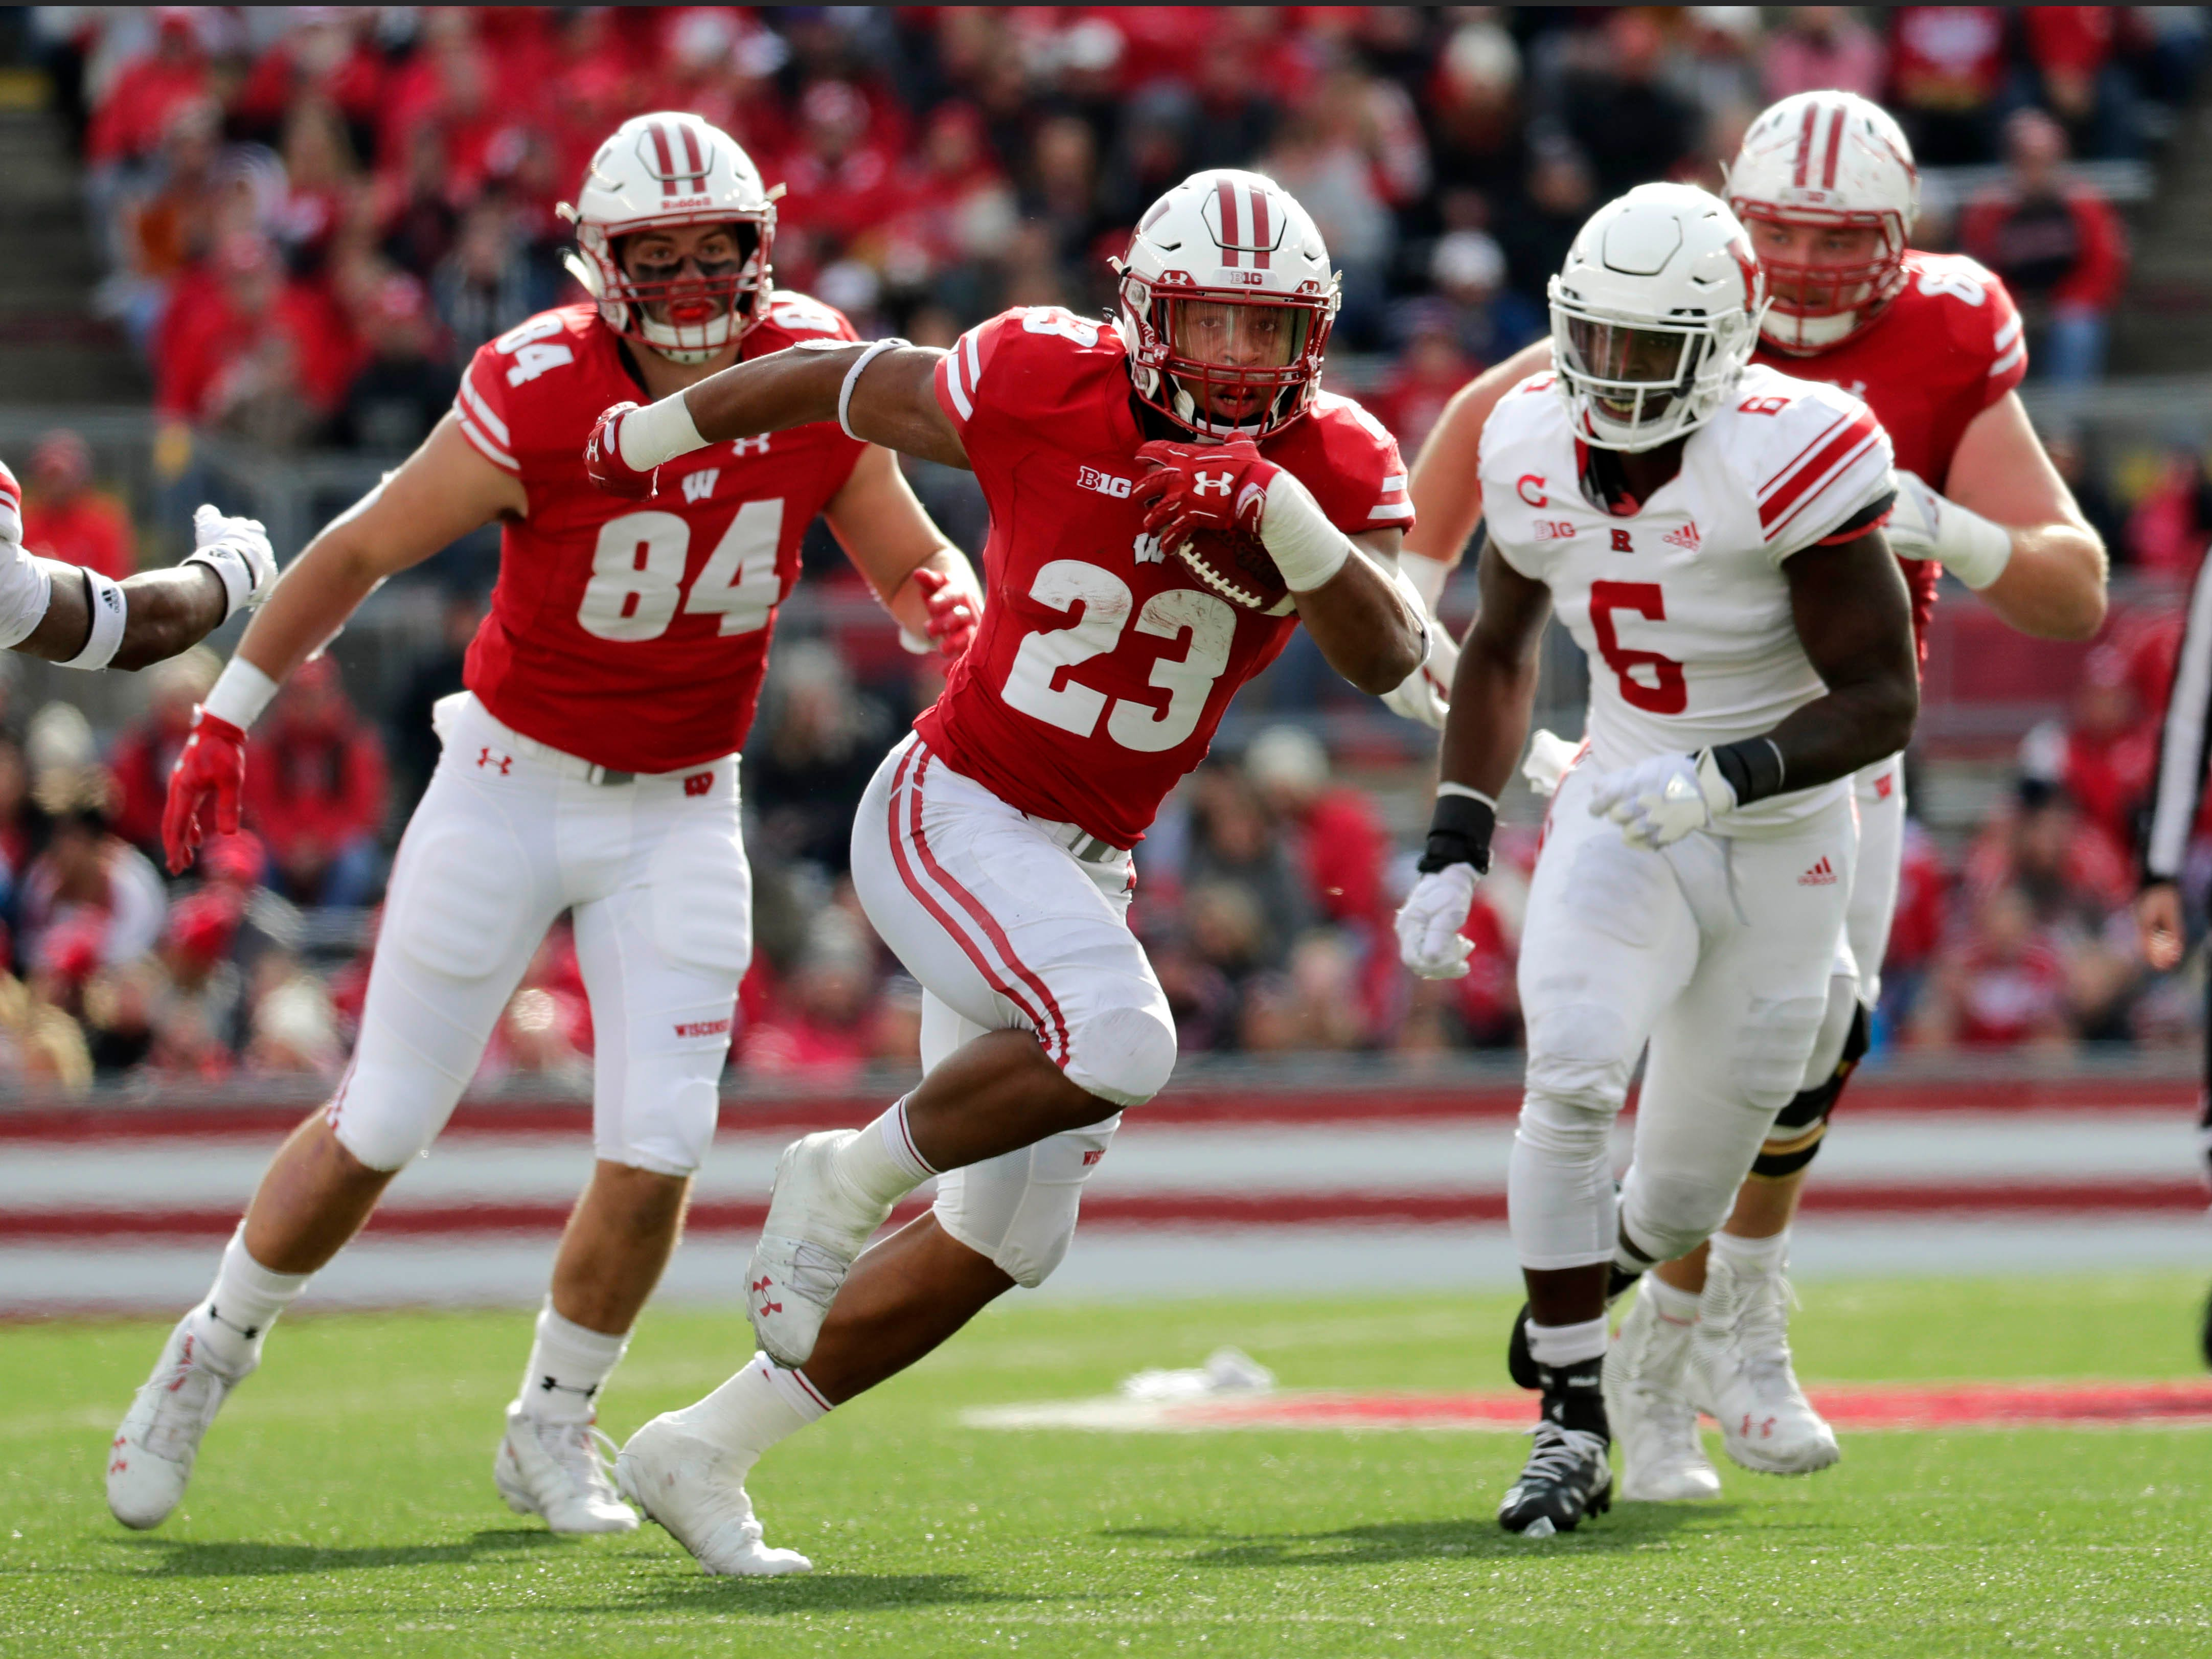 UW running back Jonathan Taylor finds room to run against Rutgers on his way to the end zone during the second half Saturday.